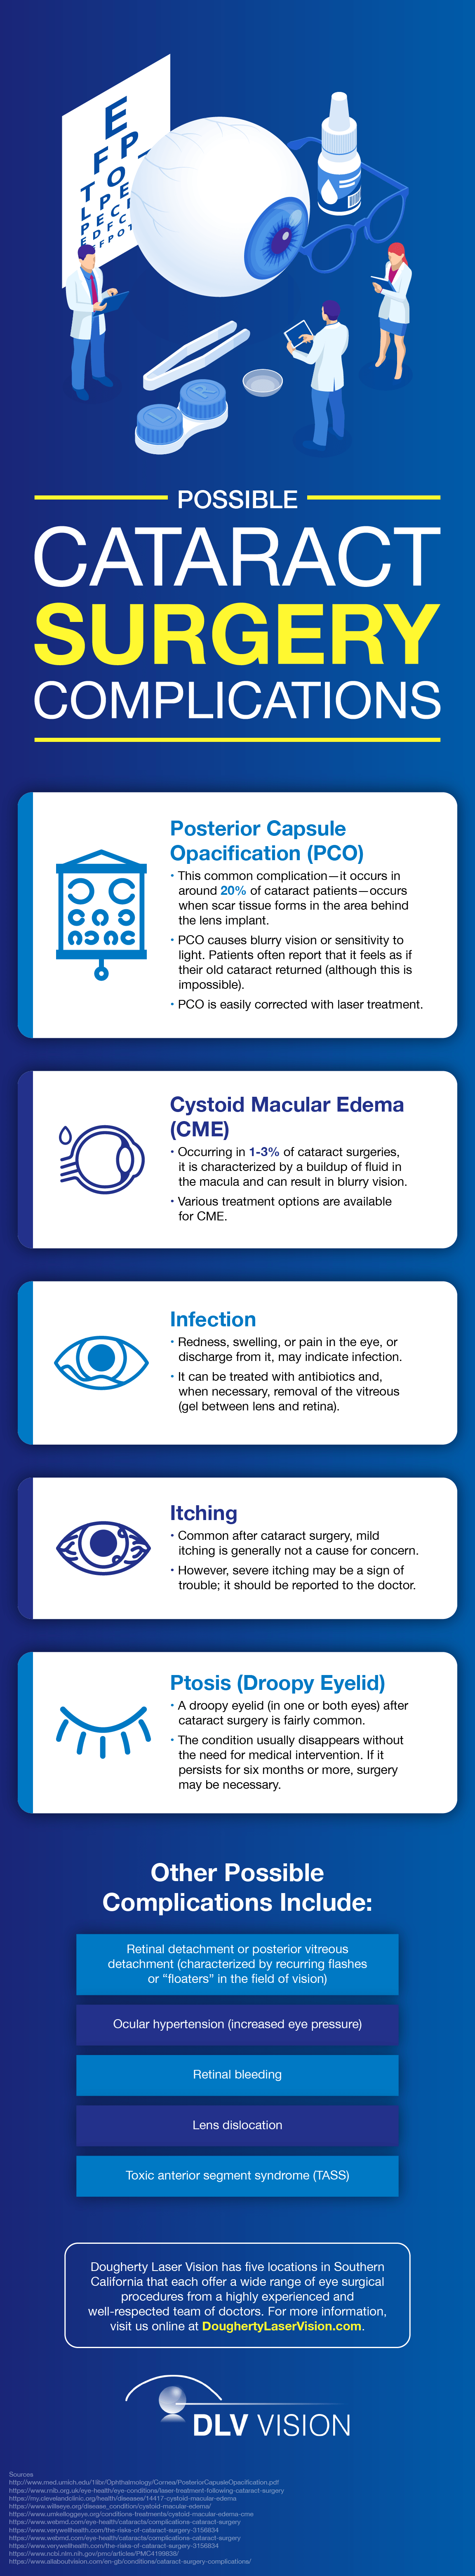 Possible Cataract Surgery Complications